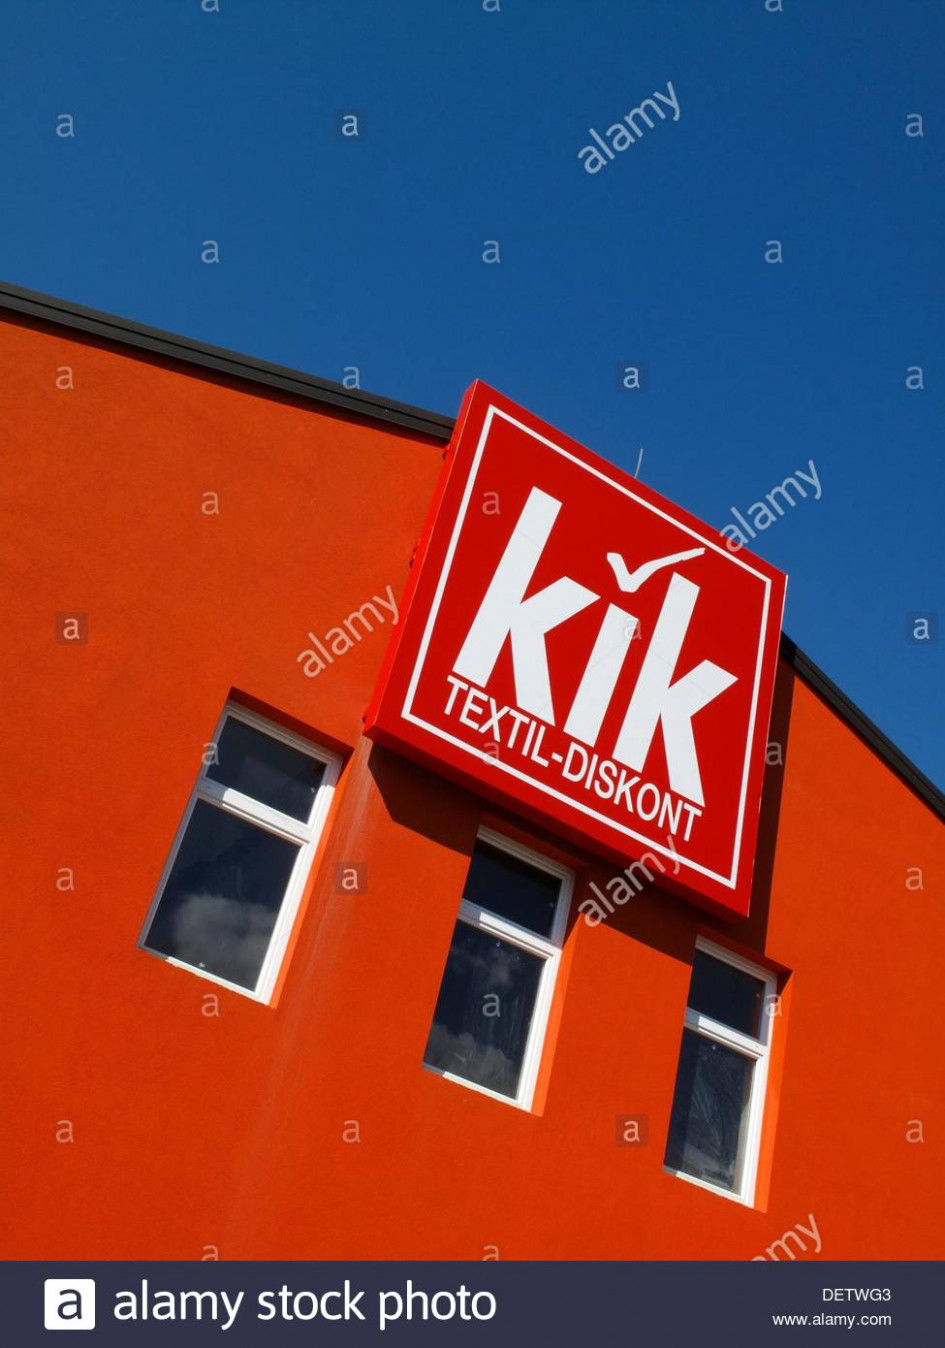 A sign for a Kik discount clothing store in Slovenia Stock Photo